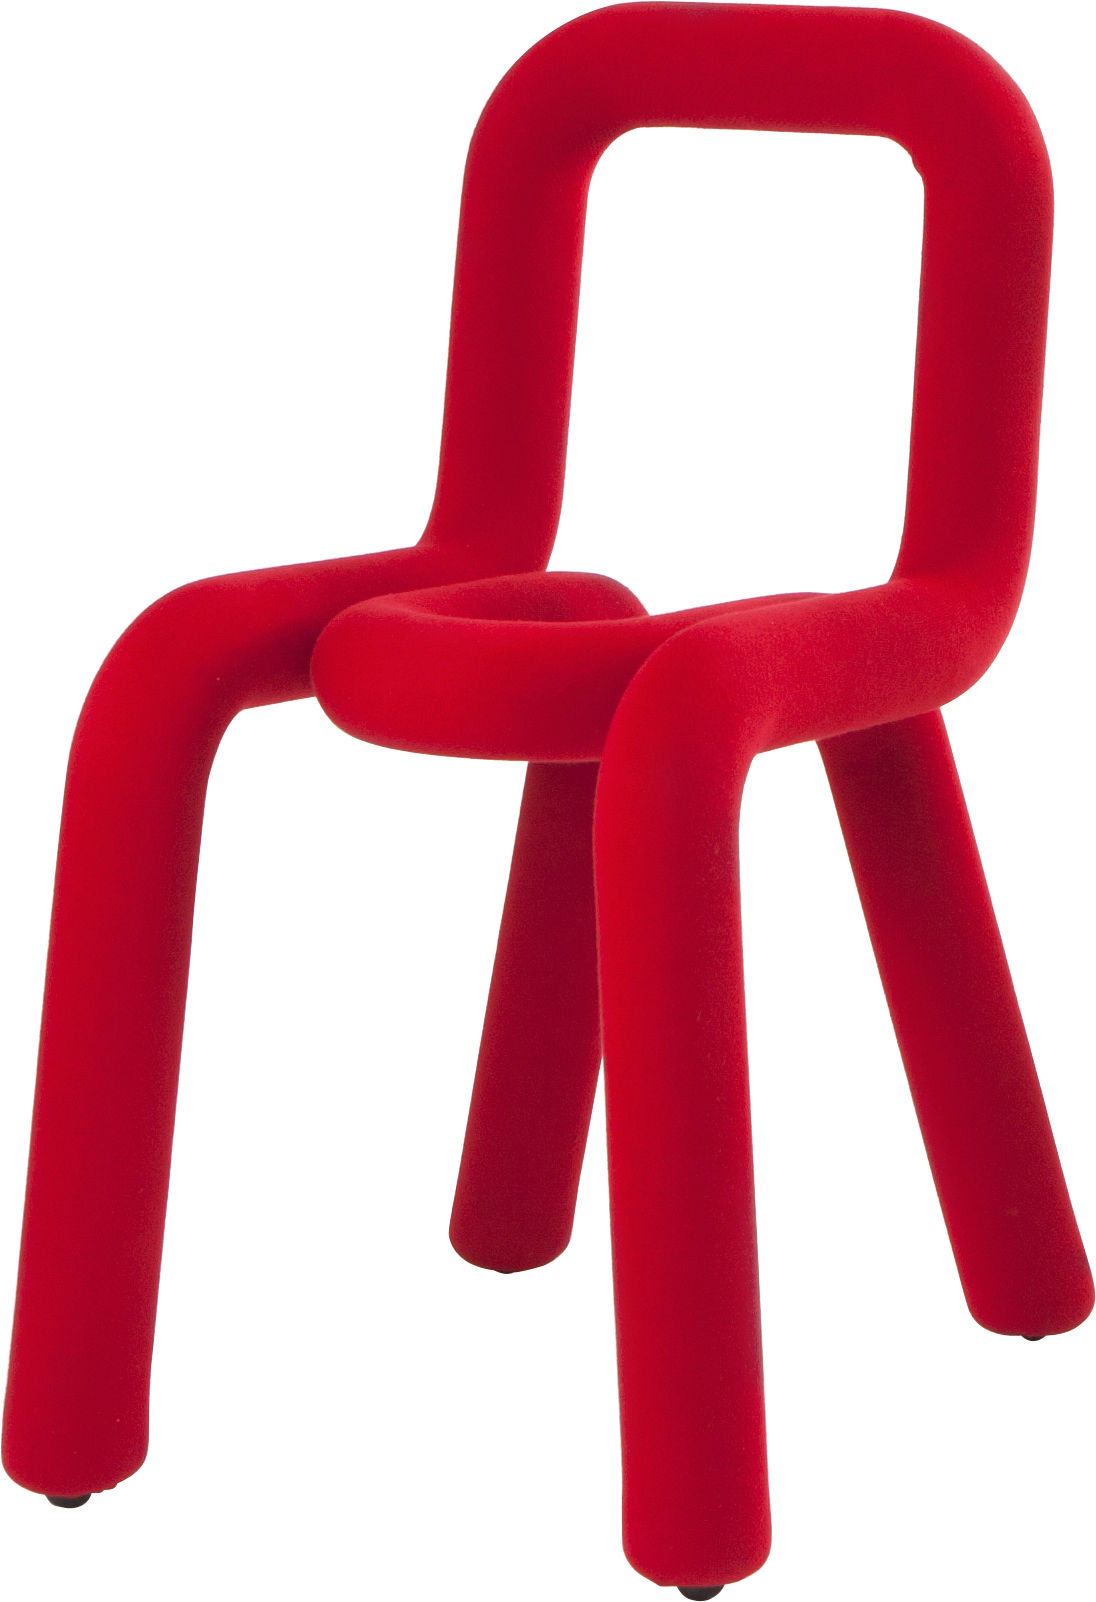 Furniture - Chairs - Bold Padded chair - Fabric by Moustache - Red - Fabric, Polyurethane foam, Steel